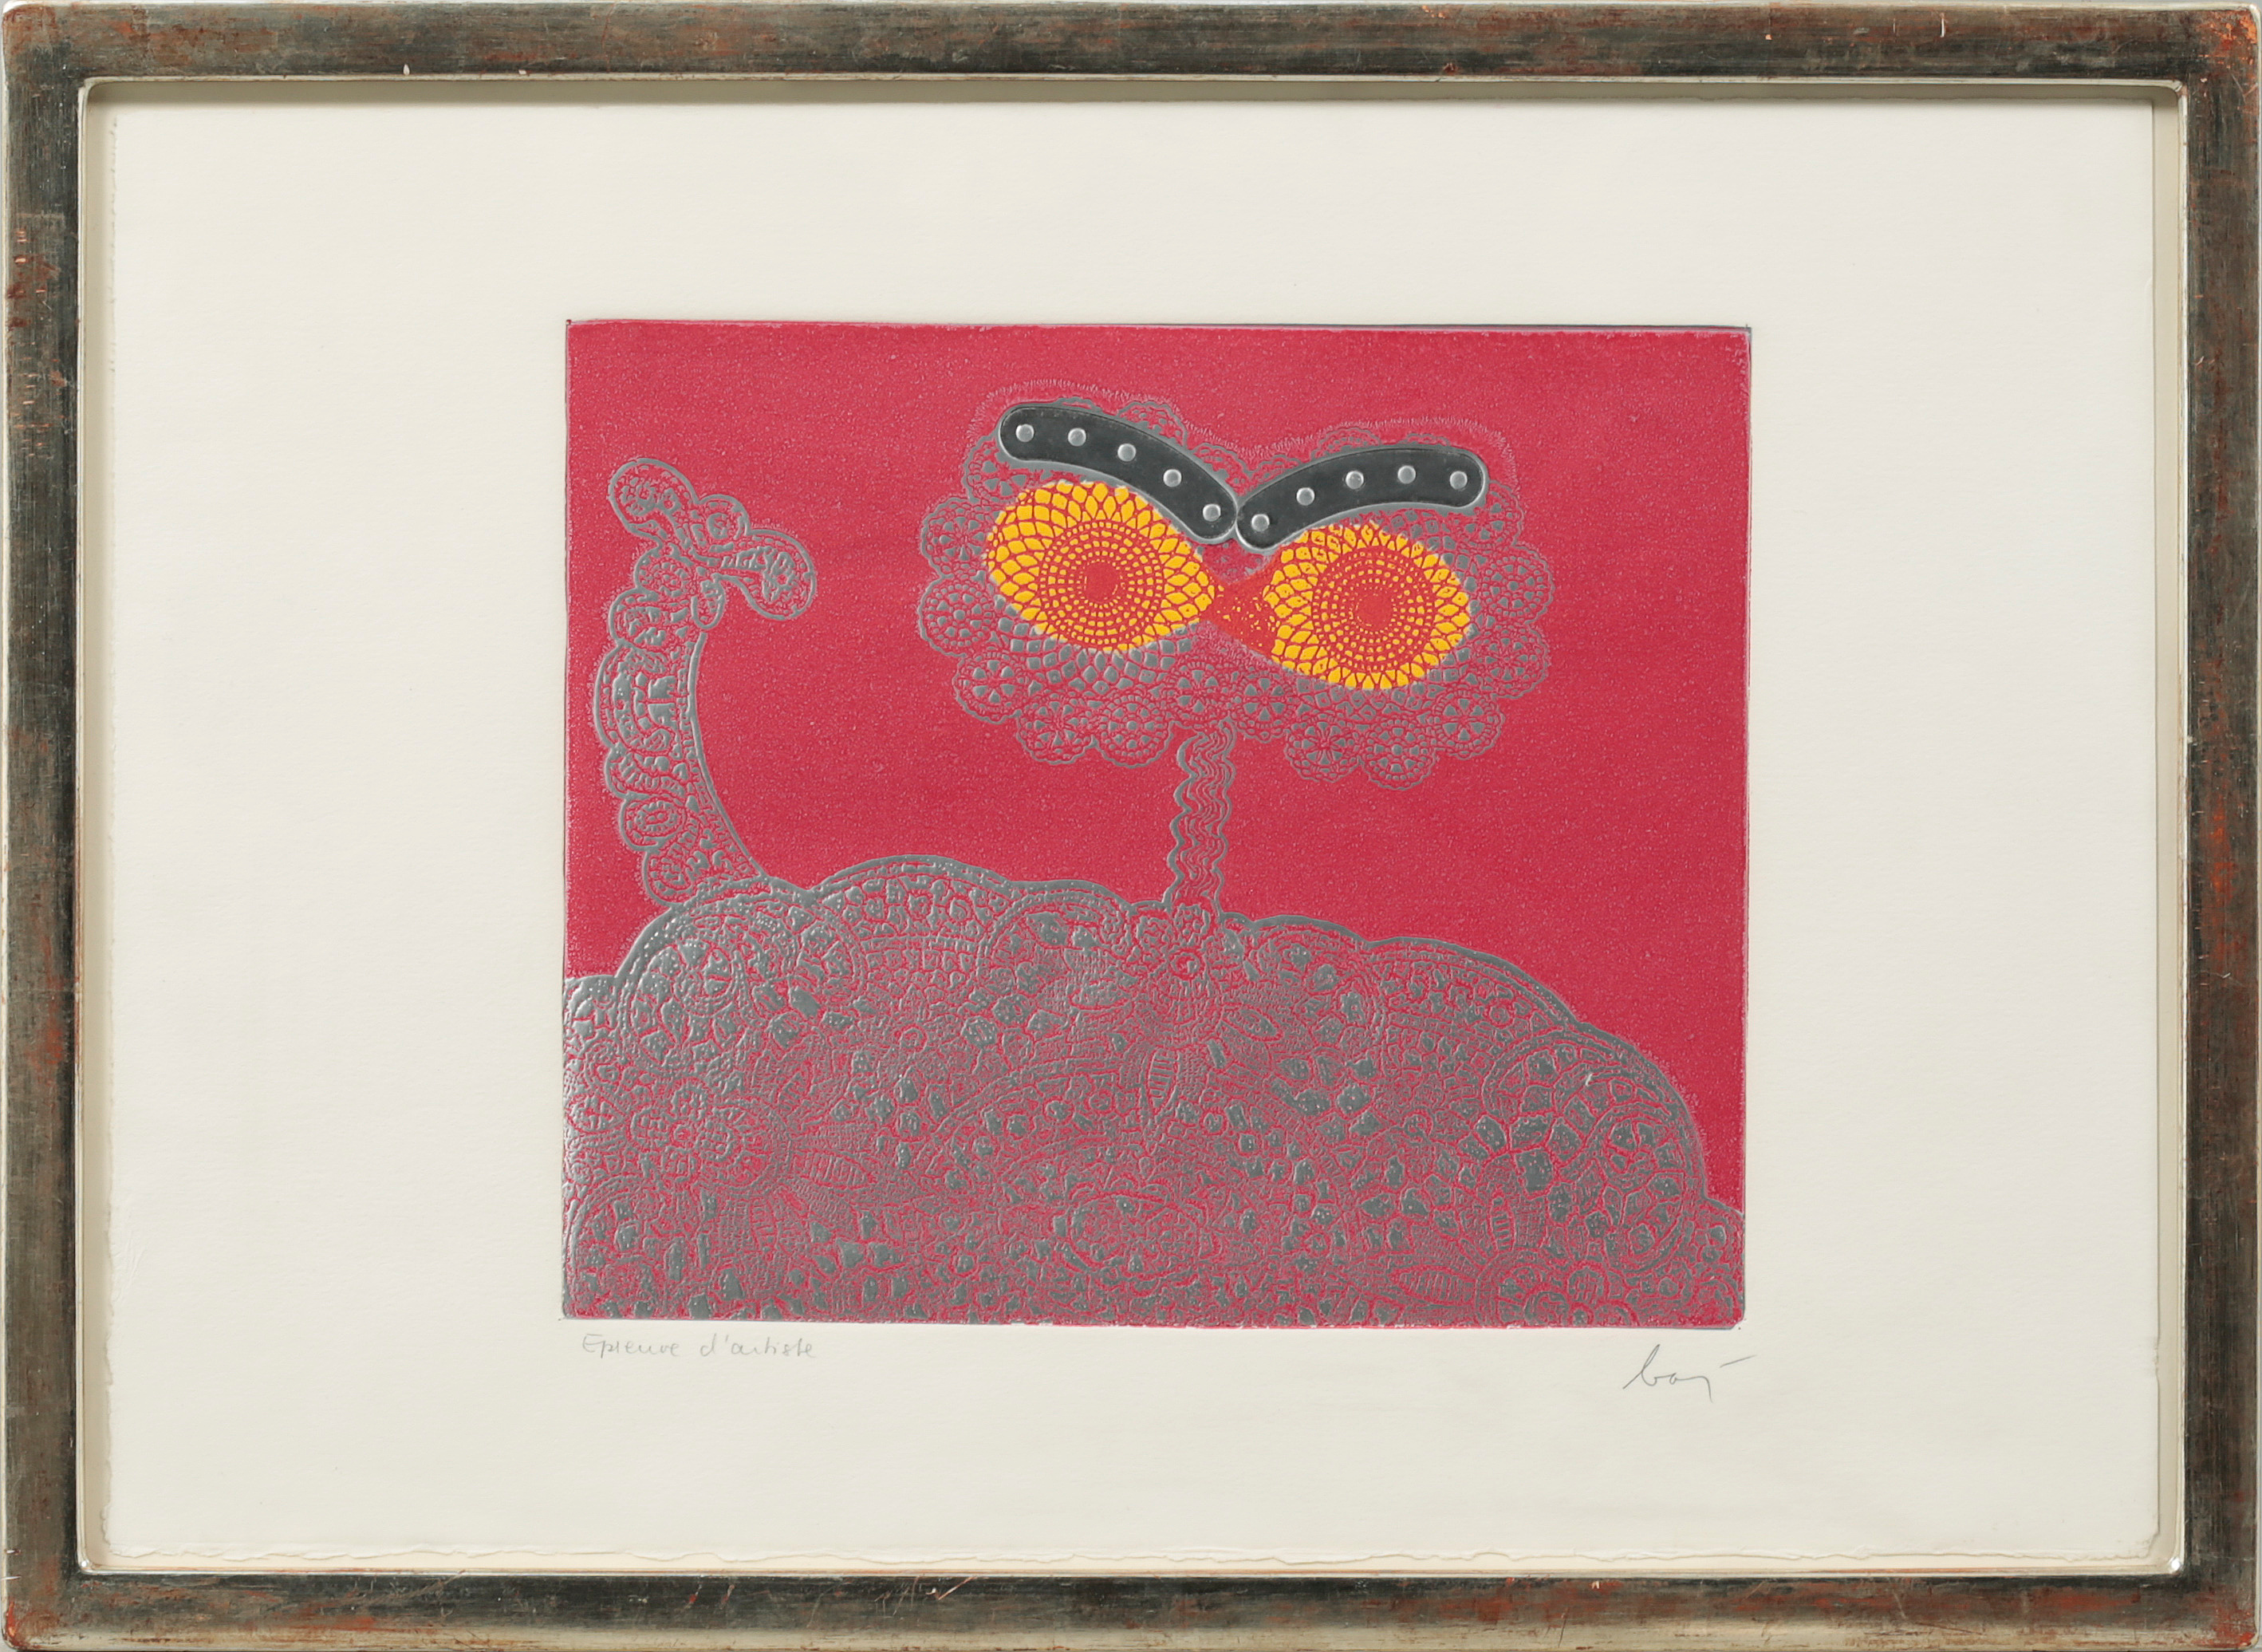 ENRICO BAJ, ENRICO BAJ, aquatint in colours, signed and numbered ...